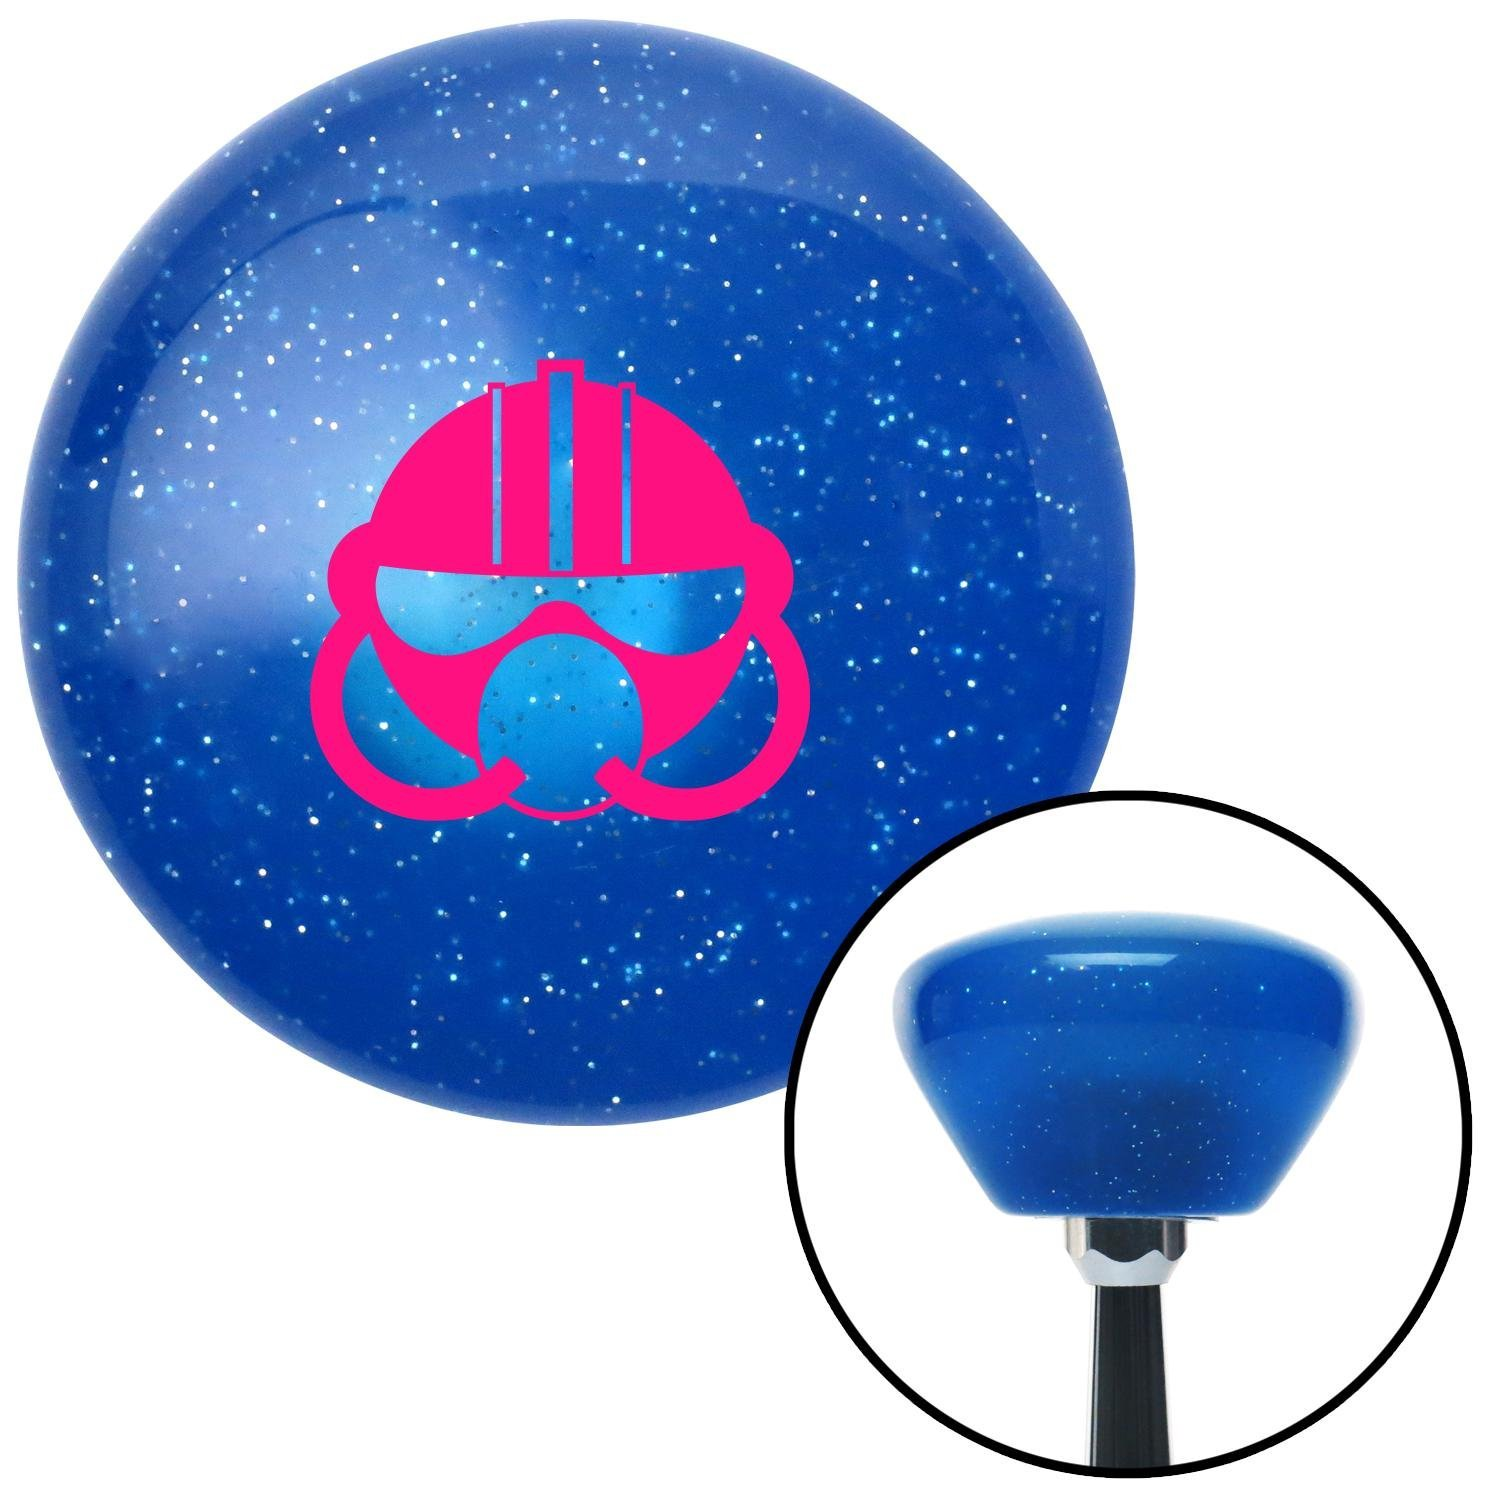 American Shifter 187148 Blue Retro Metal Flake Shift Knob with M16 x 1.5 Insert Pink Gas Mask